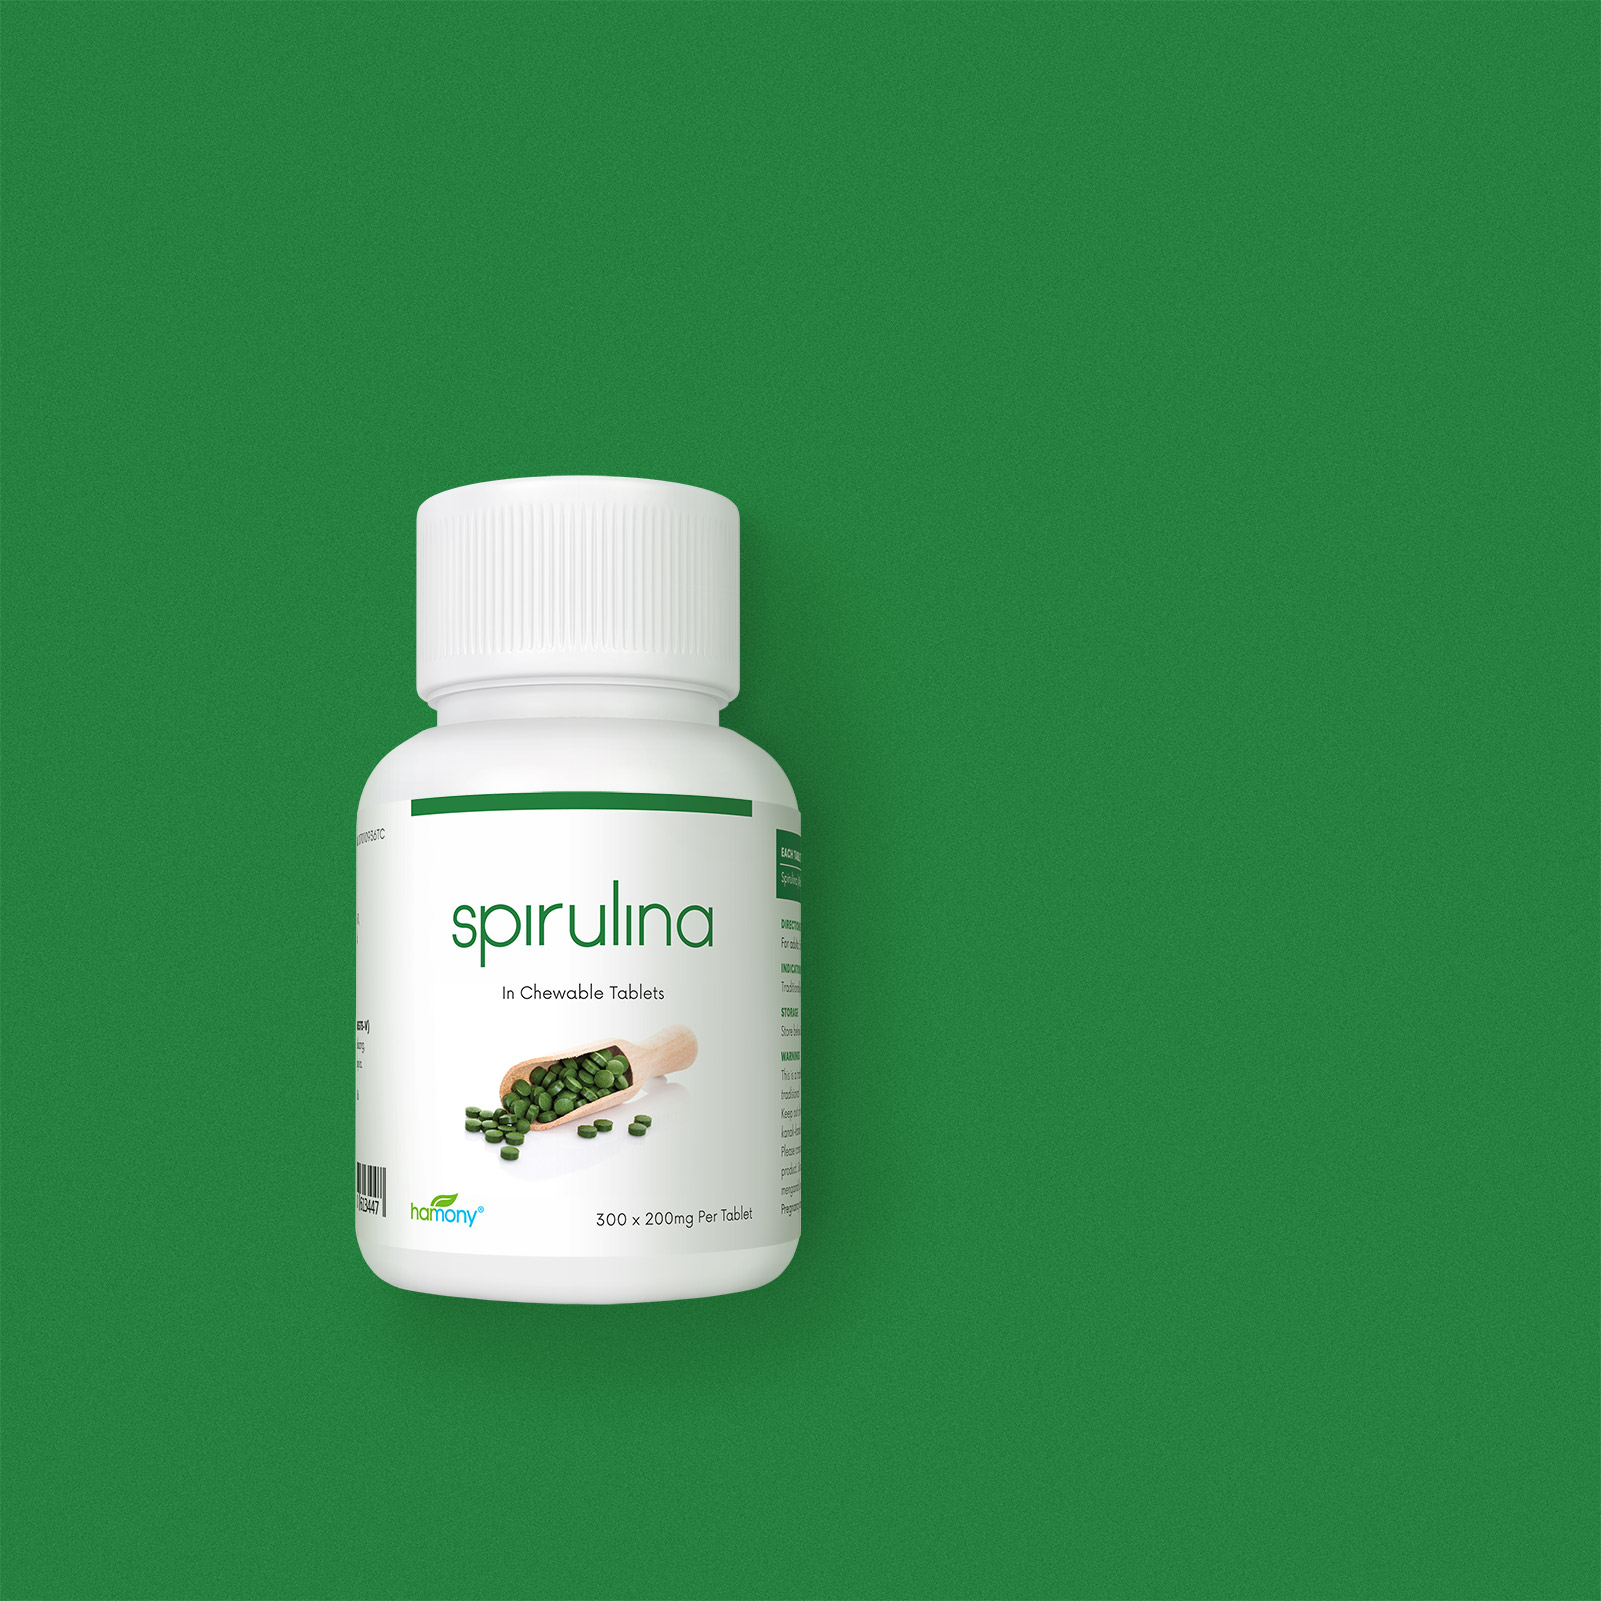 SPIRULINA_BOTTLE.jpg